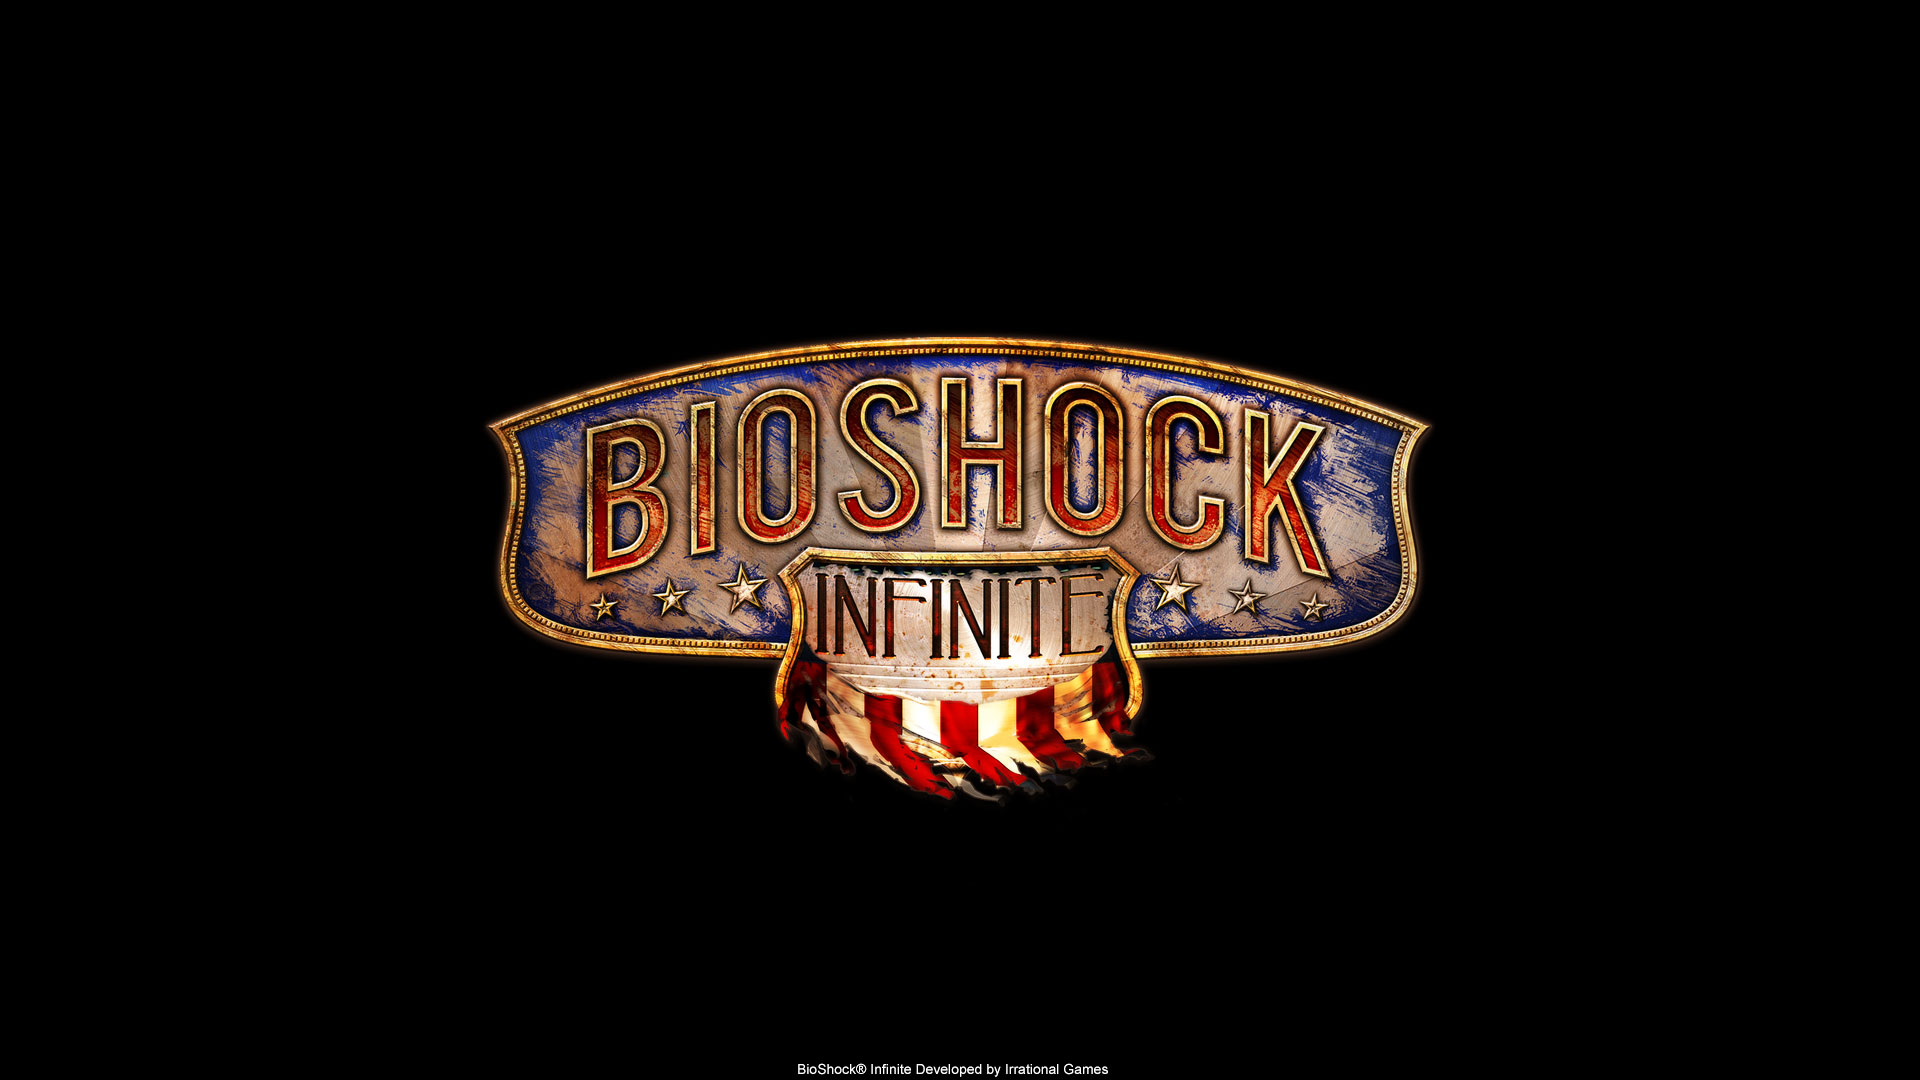 11-03-26-05-21_0_bioshockinfinite_1920x1080